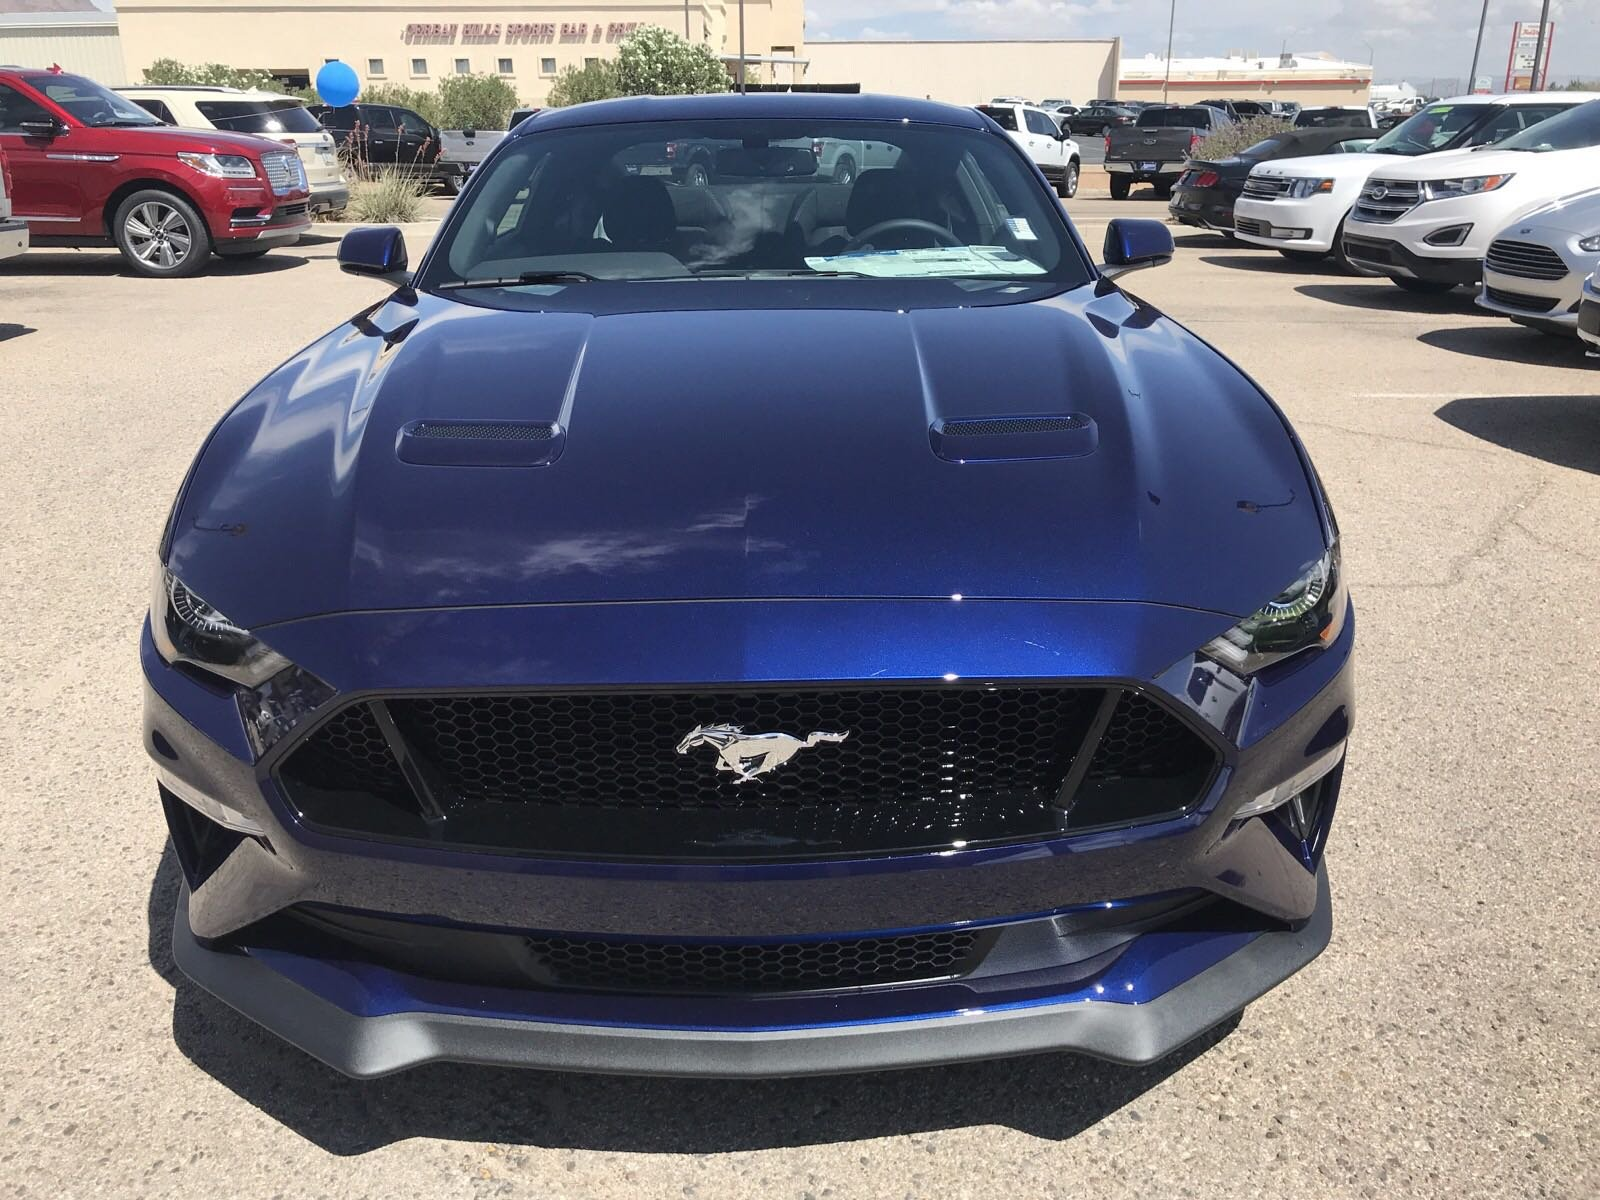 New 2019 Ford Mustang GT 2D Coupe in K